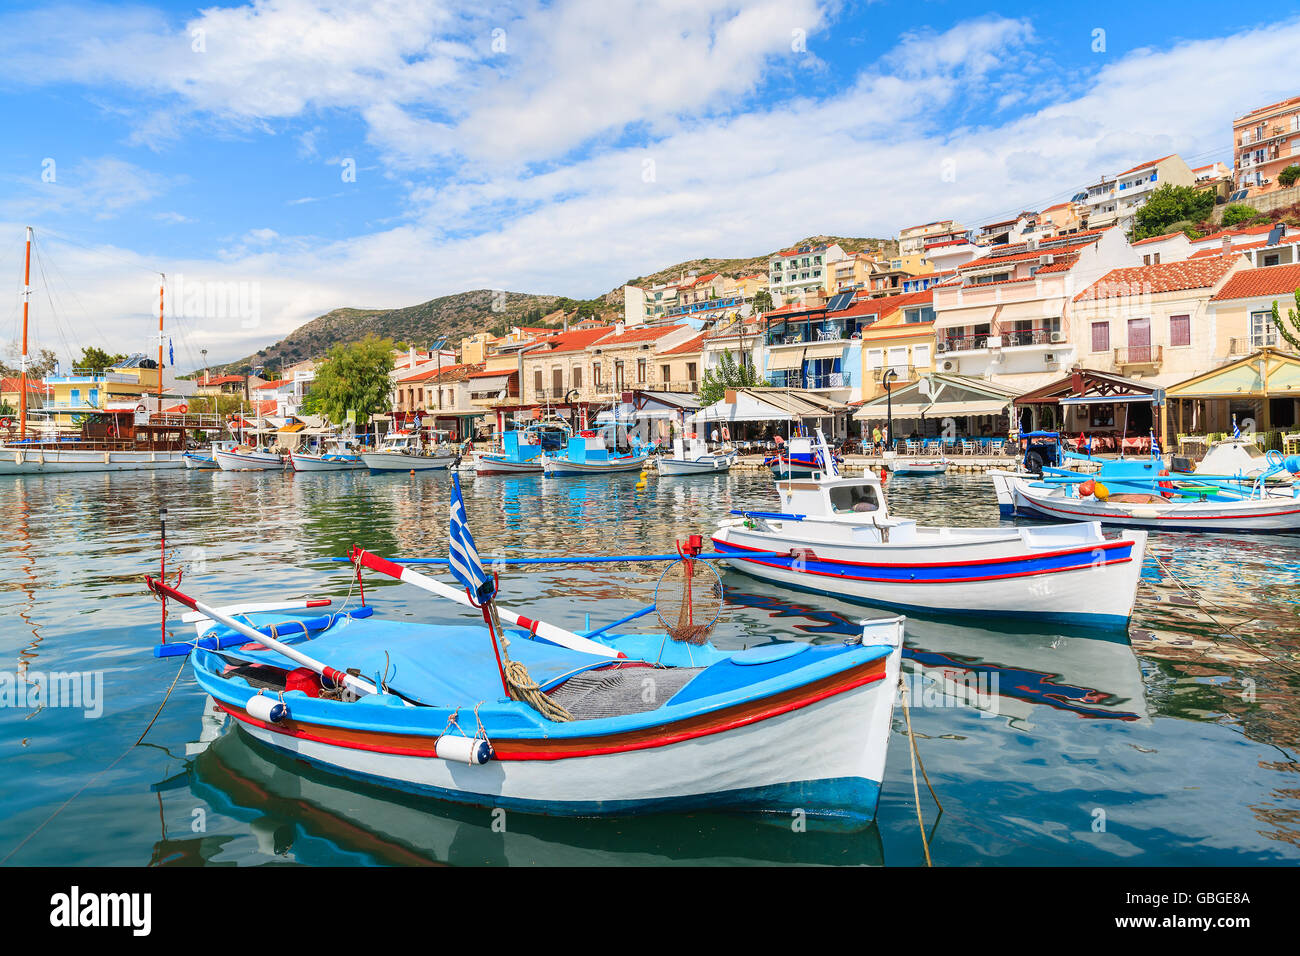 Traditional colourful Greek fishing boats in Pythagorion port, Samos island, Greece Stock Photo